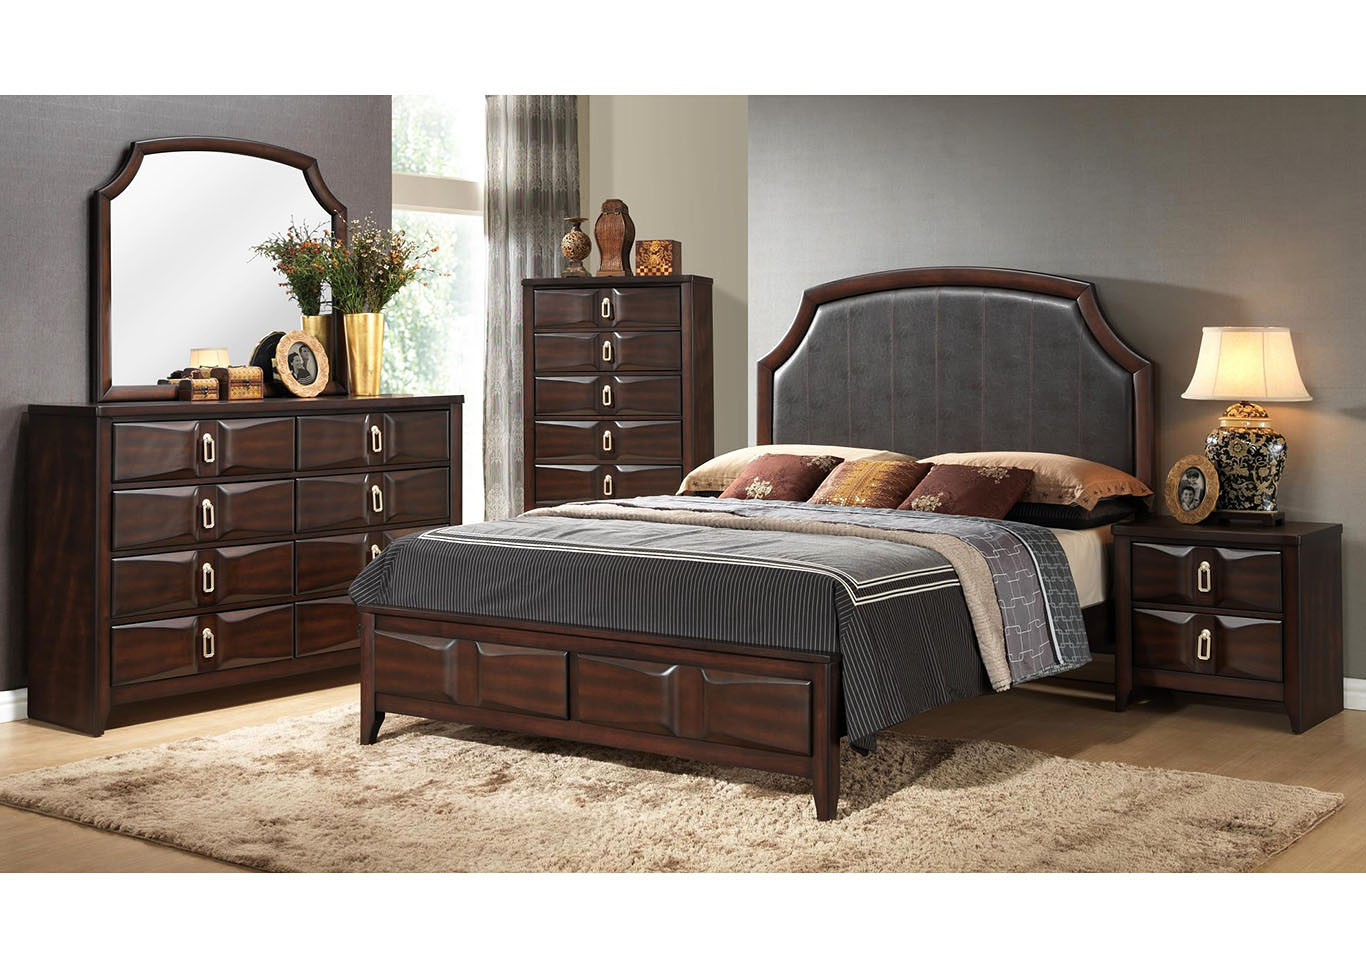 Brown Storage Queen 4 Piece Bedroom Set W/ Chest, Dresser & Mirror,Global Trading